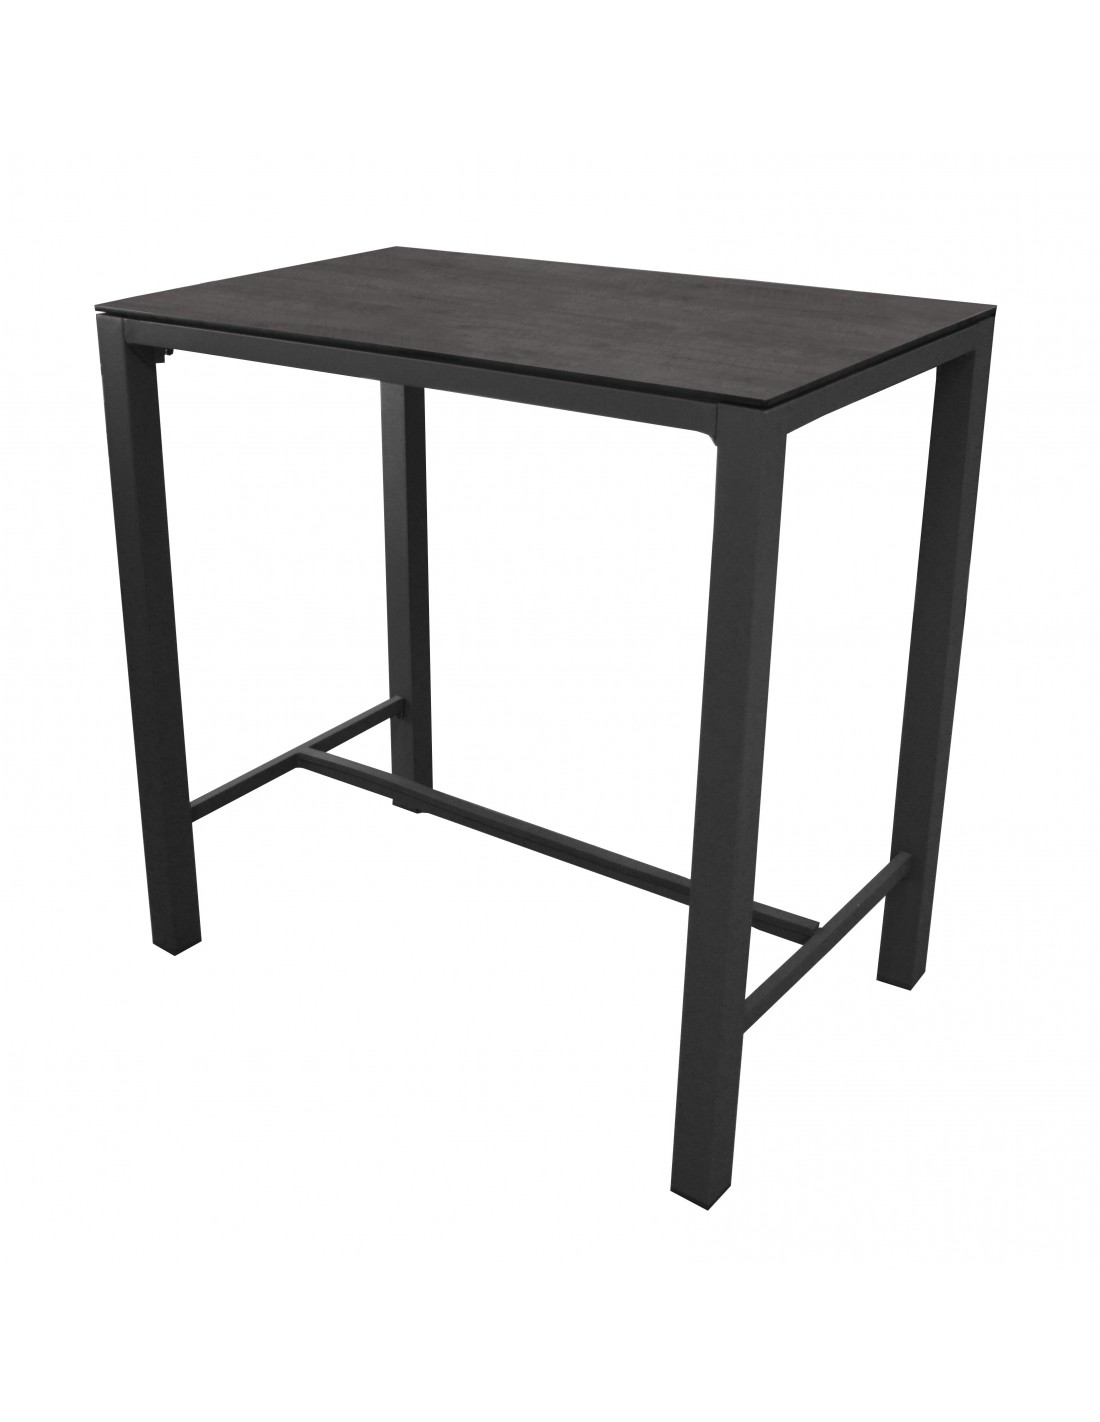 Table haute stoneo d 39 ext rieur aluminium et plateau hpl for Table en aluminium exterieur